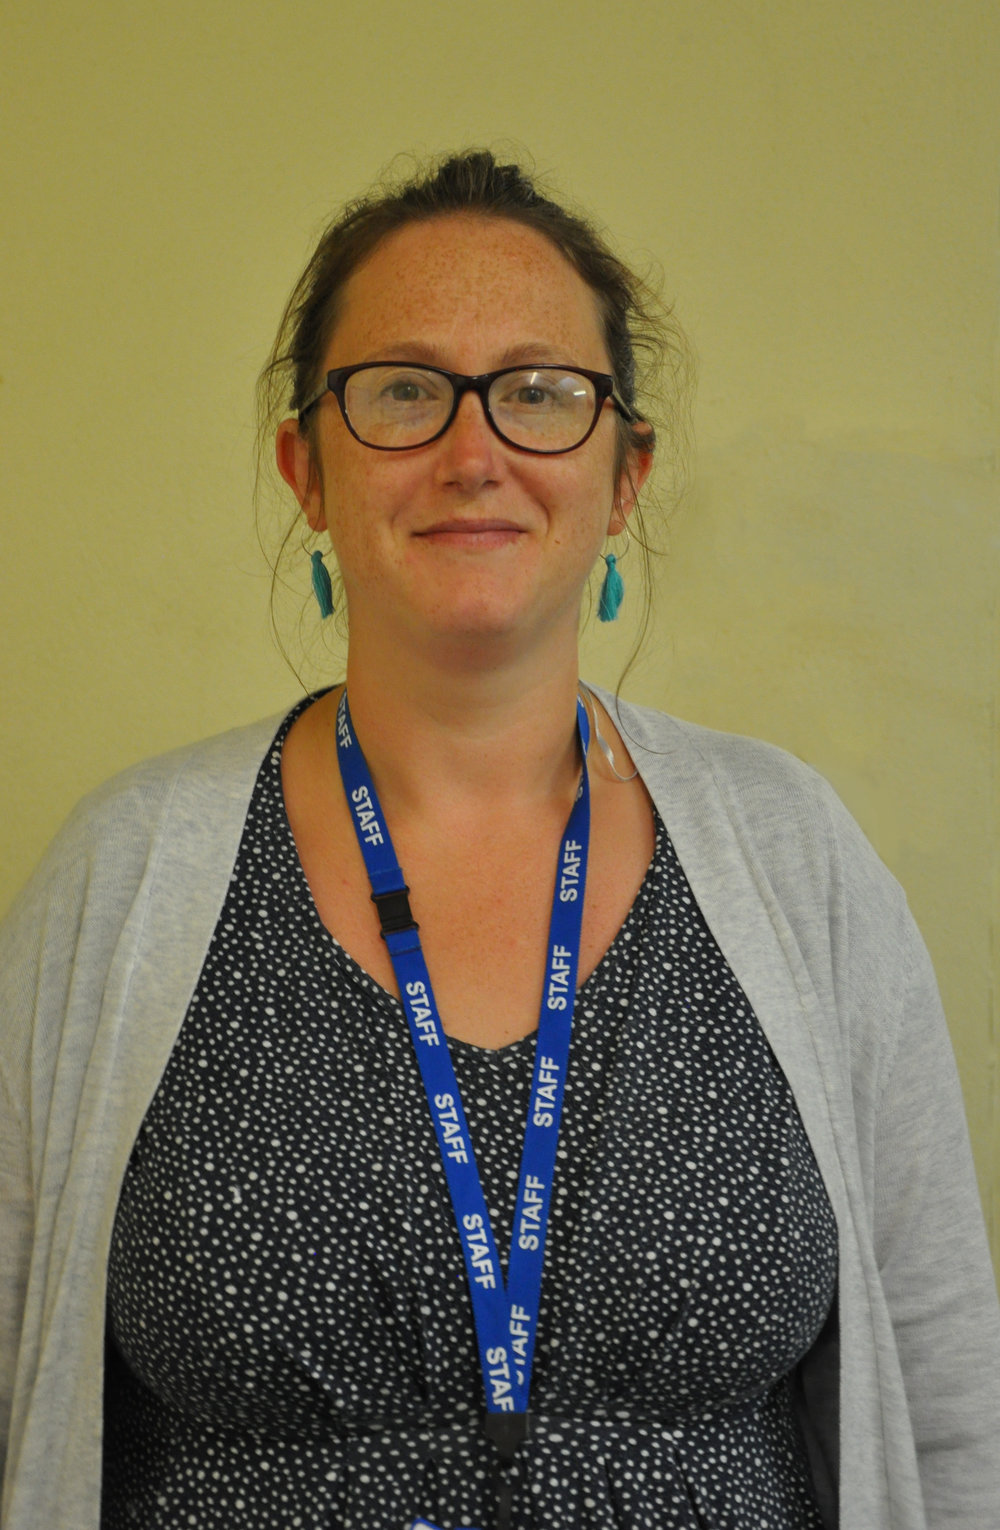 Mrs Cromey is Head of Art, Music, Drama and PE